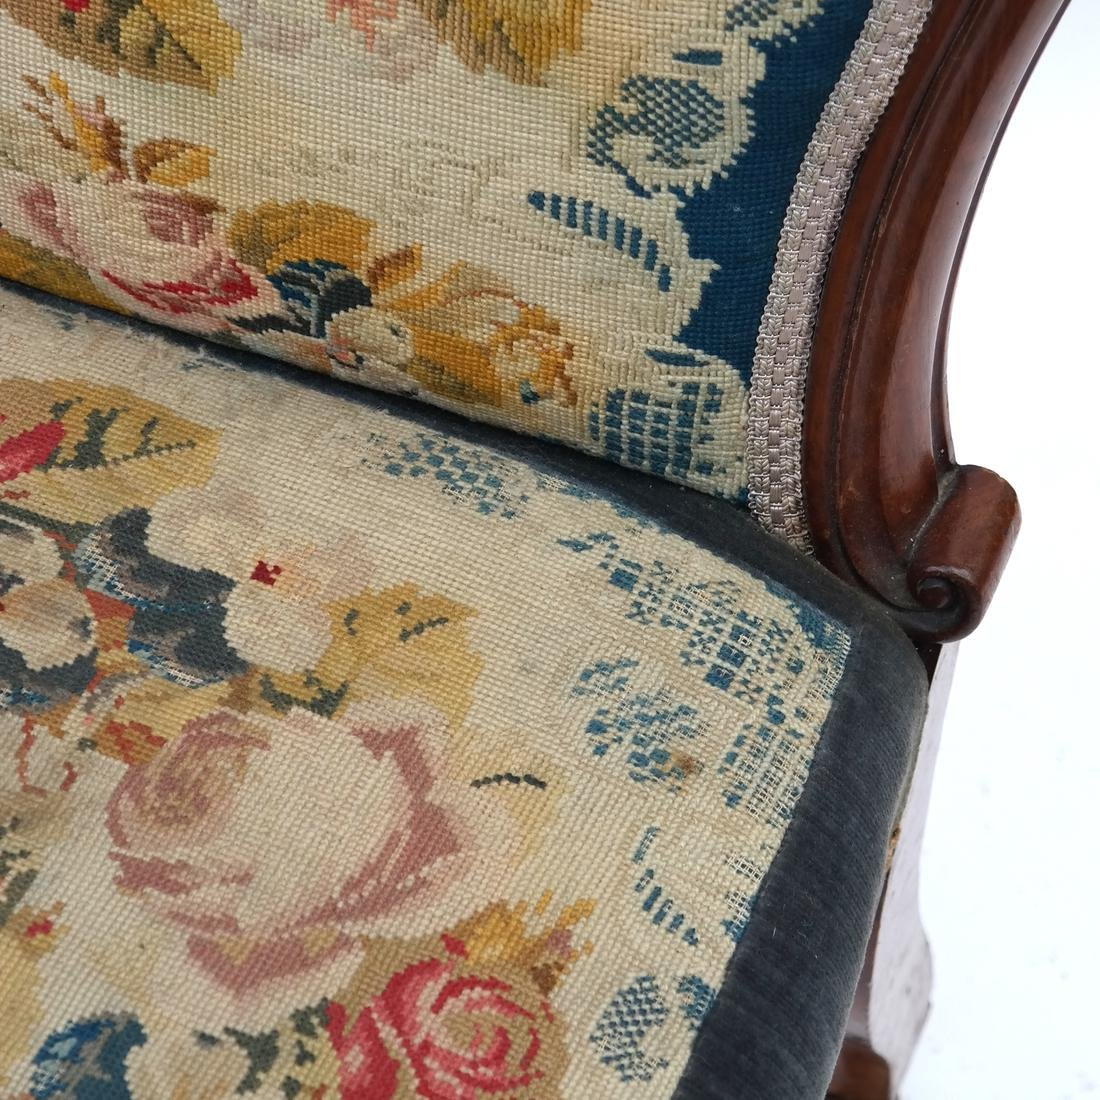 English Victorian Needlepoint Slipper Chair - 5